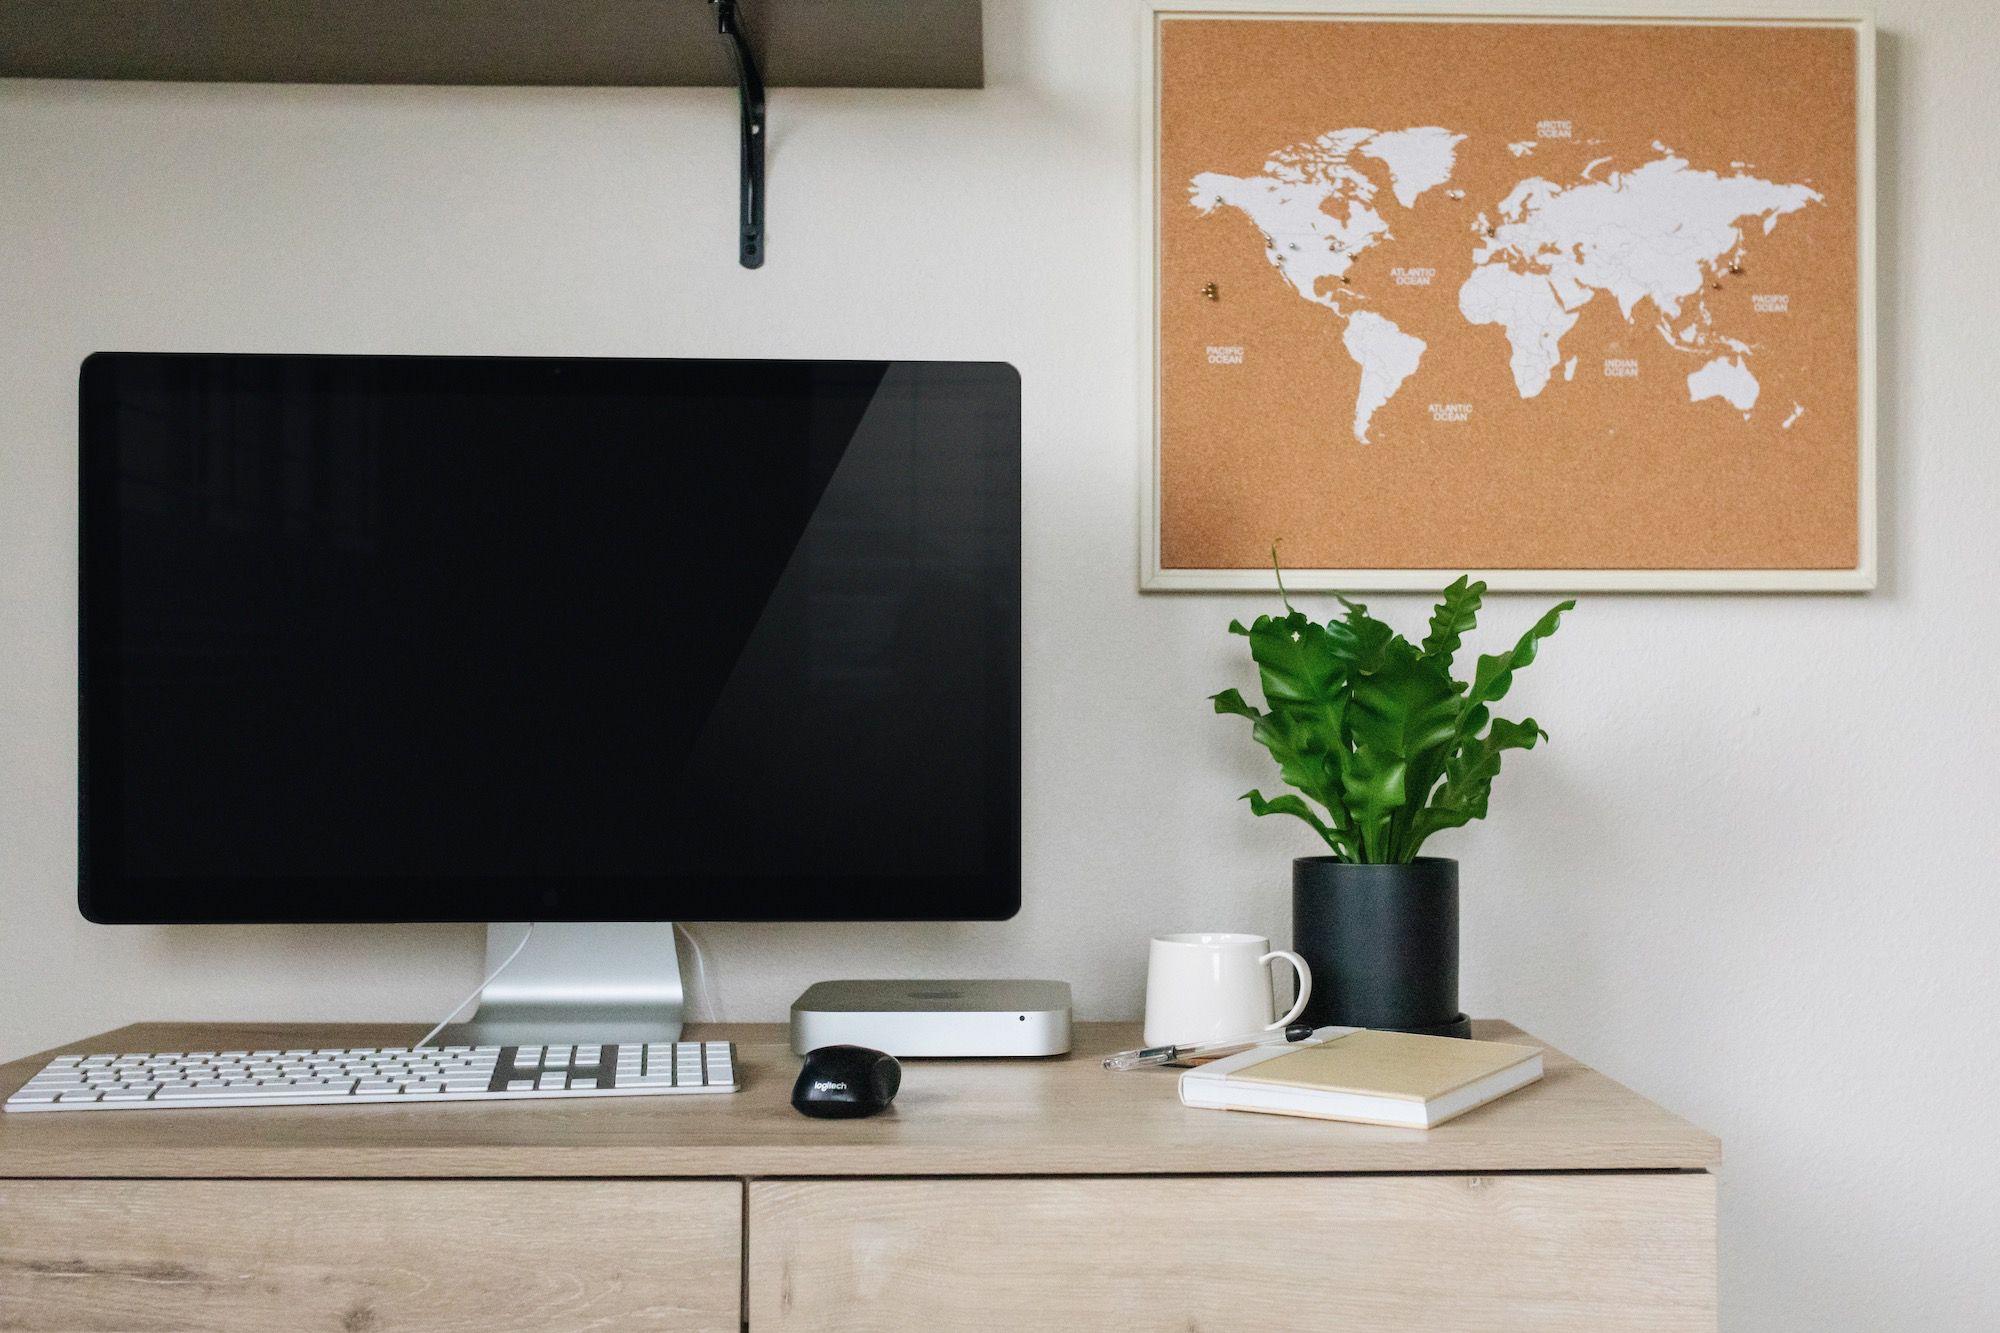 10 Habits of Highly Organized People You Need to Steal